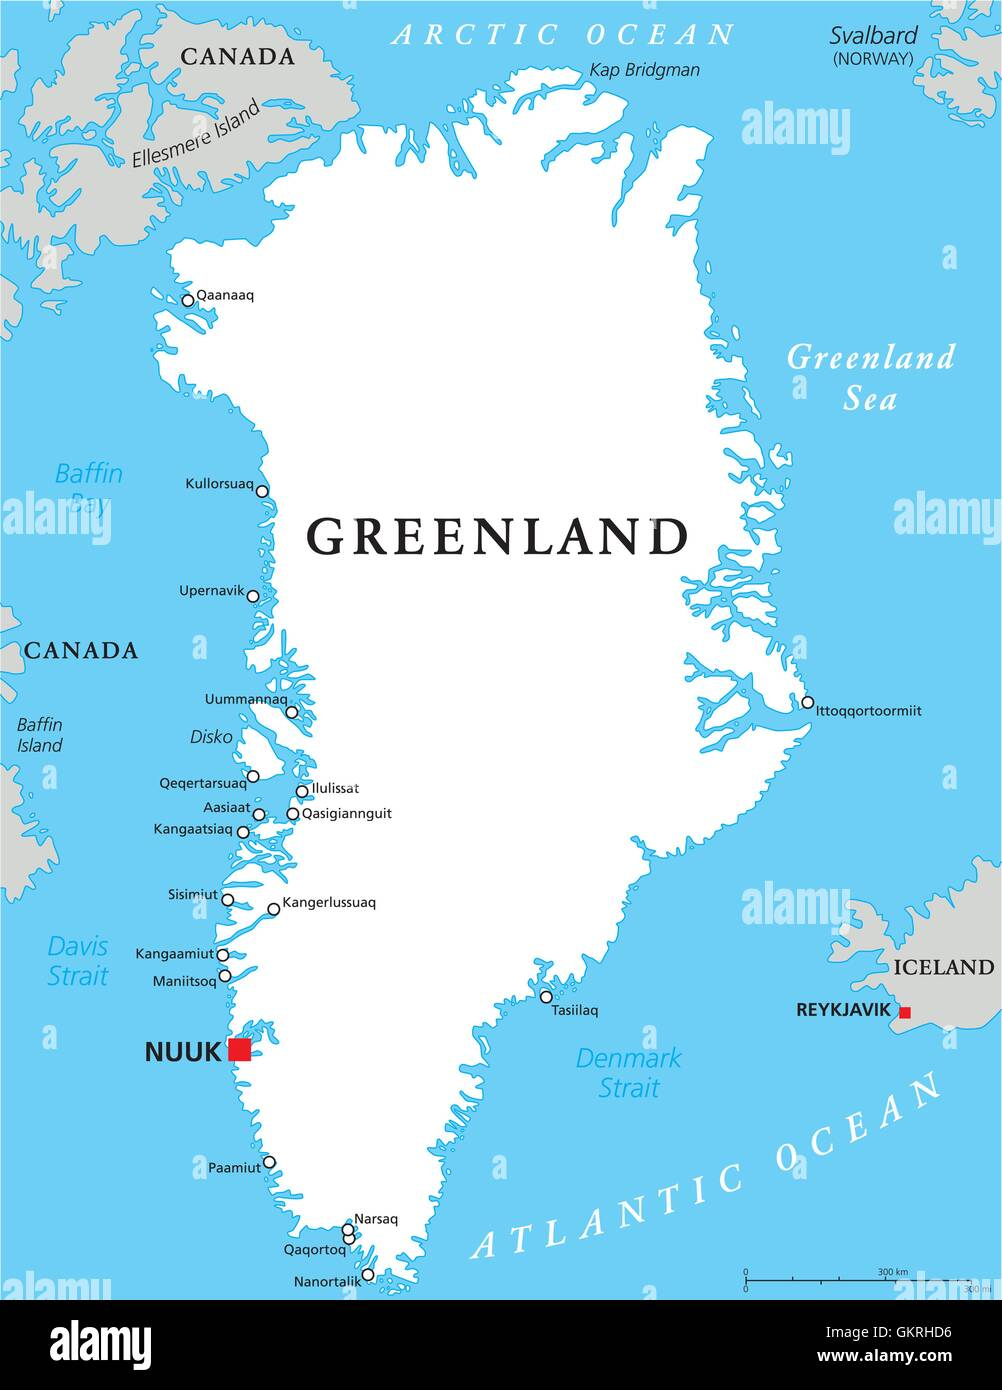 arctic greenland denmark map atlas map of the world travel arctic greenland europe denmark atlantic